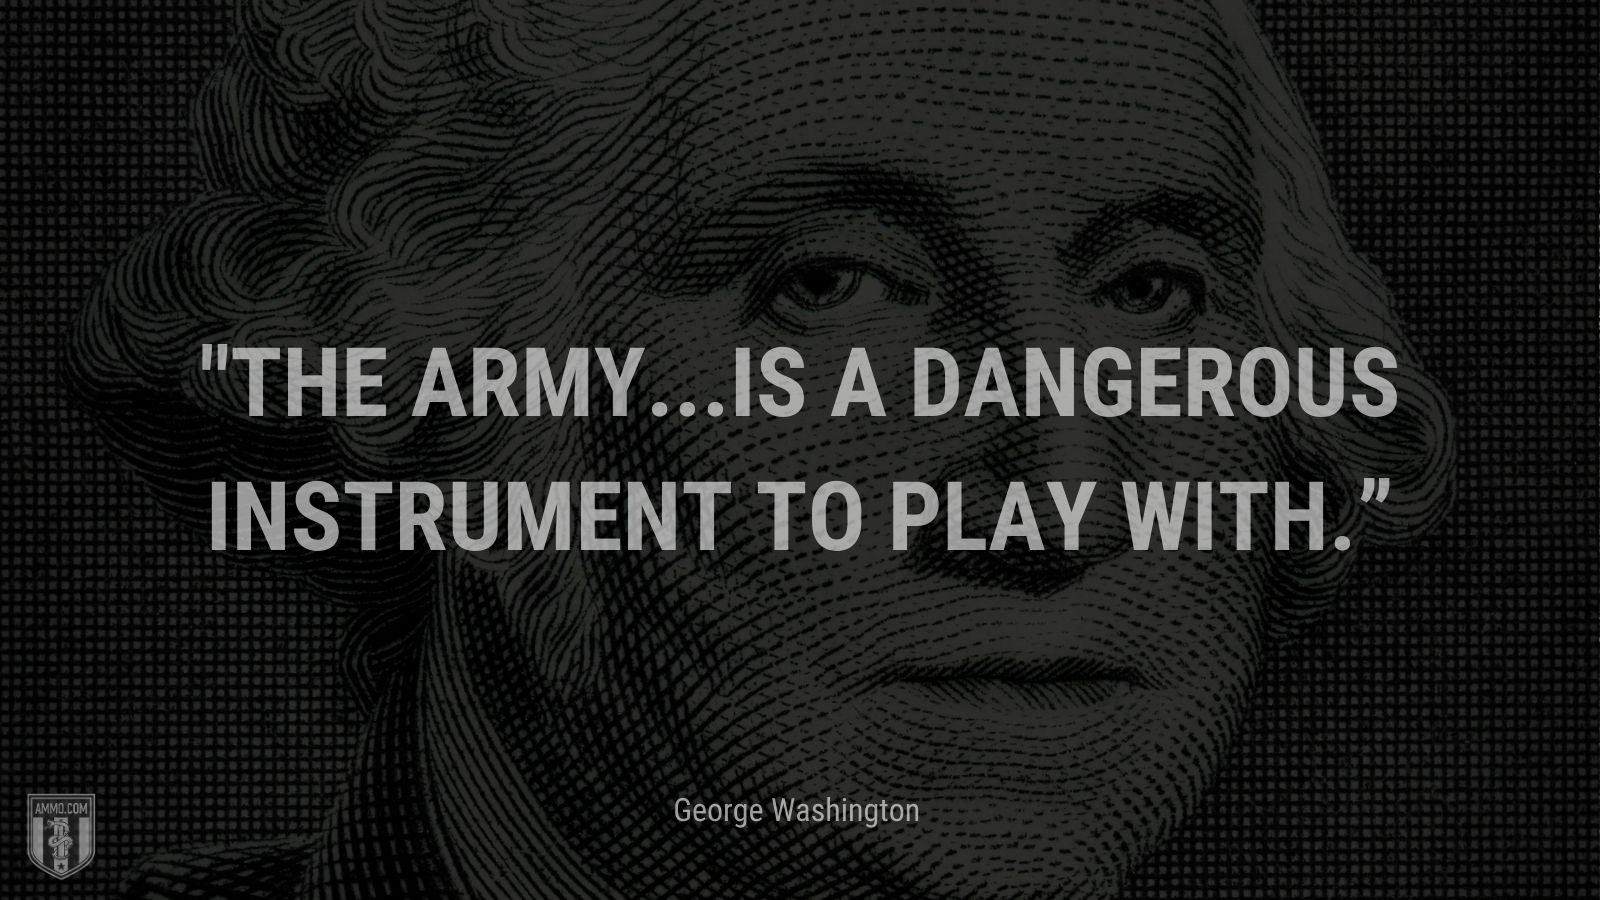 """""""The army...is a dangerous instrument to play with."""" - George Washington"""